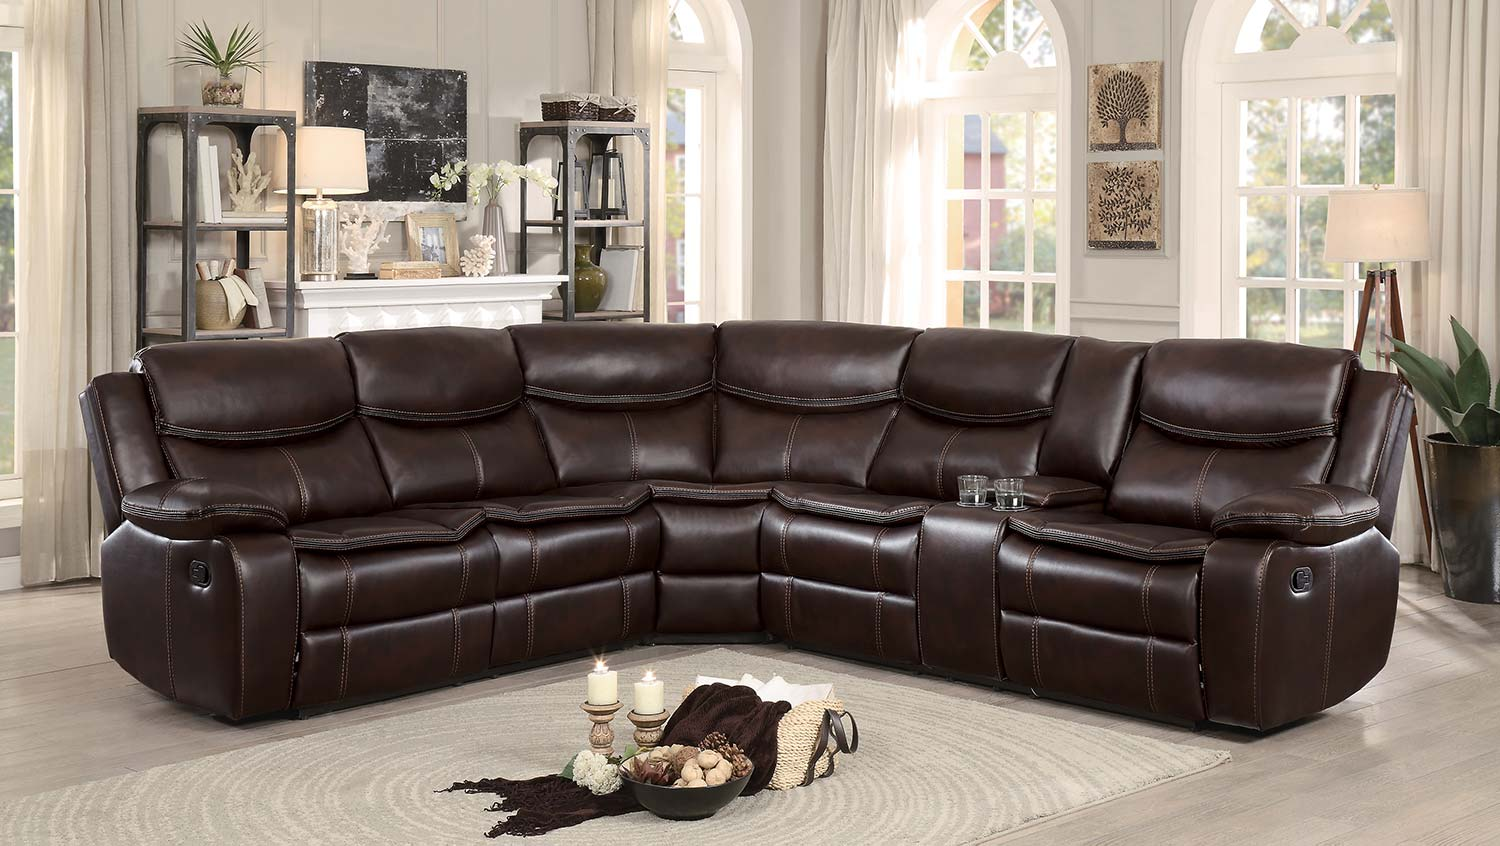 Homelegance Bastrop Reclining Sectional Sofa - Dark Brown